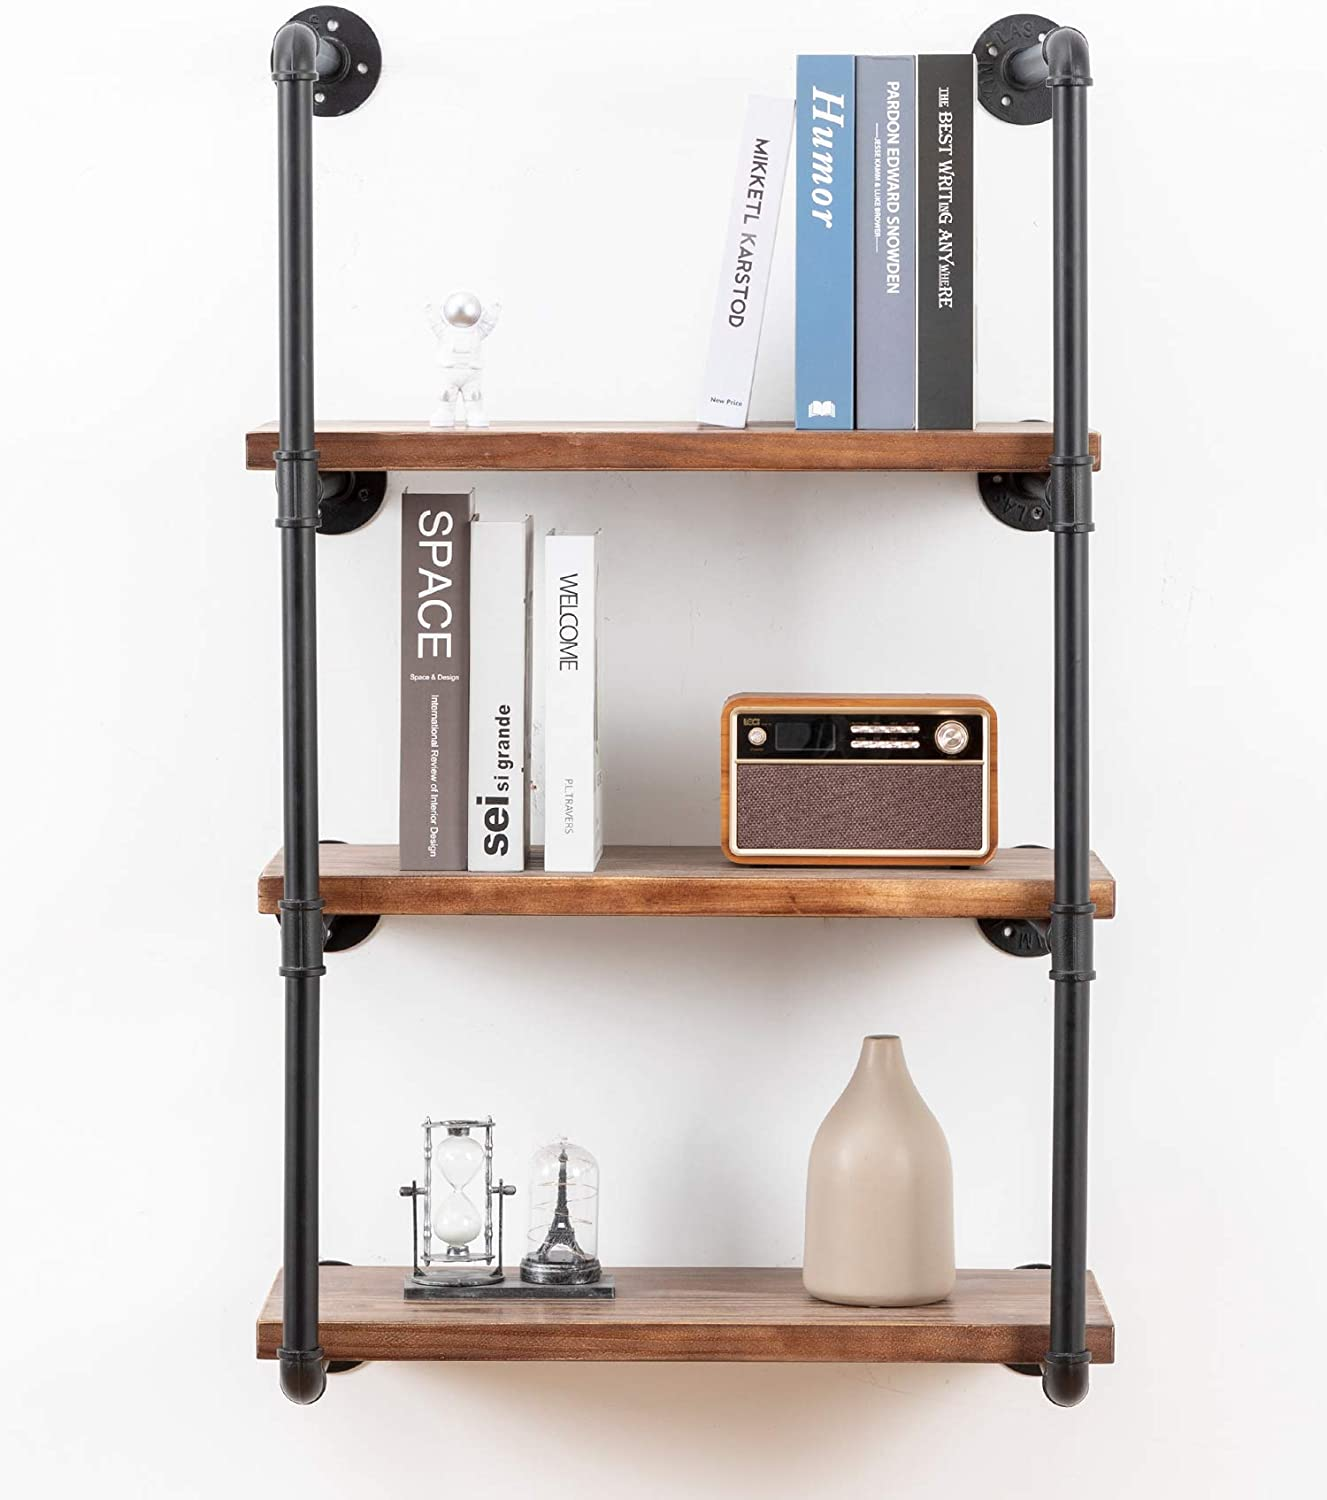 Industrial Wall Mounted Pipe Shelving,Rustic Metal Floating Shelves,Steampunk Real Wood Bookcases,DIY Bookshelf Hanging Shelves,Farmhouse Kitchen Bar Office Home Storage (4-Tier with 3 Boards,24in)